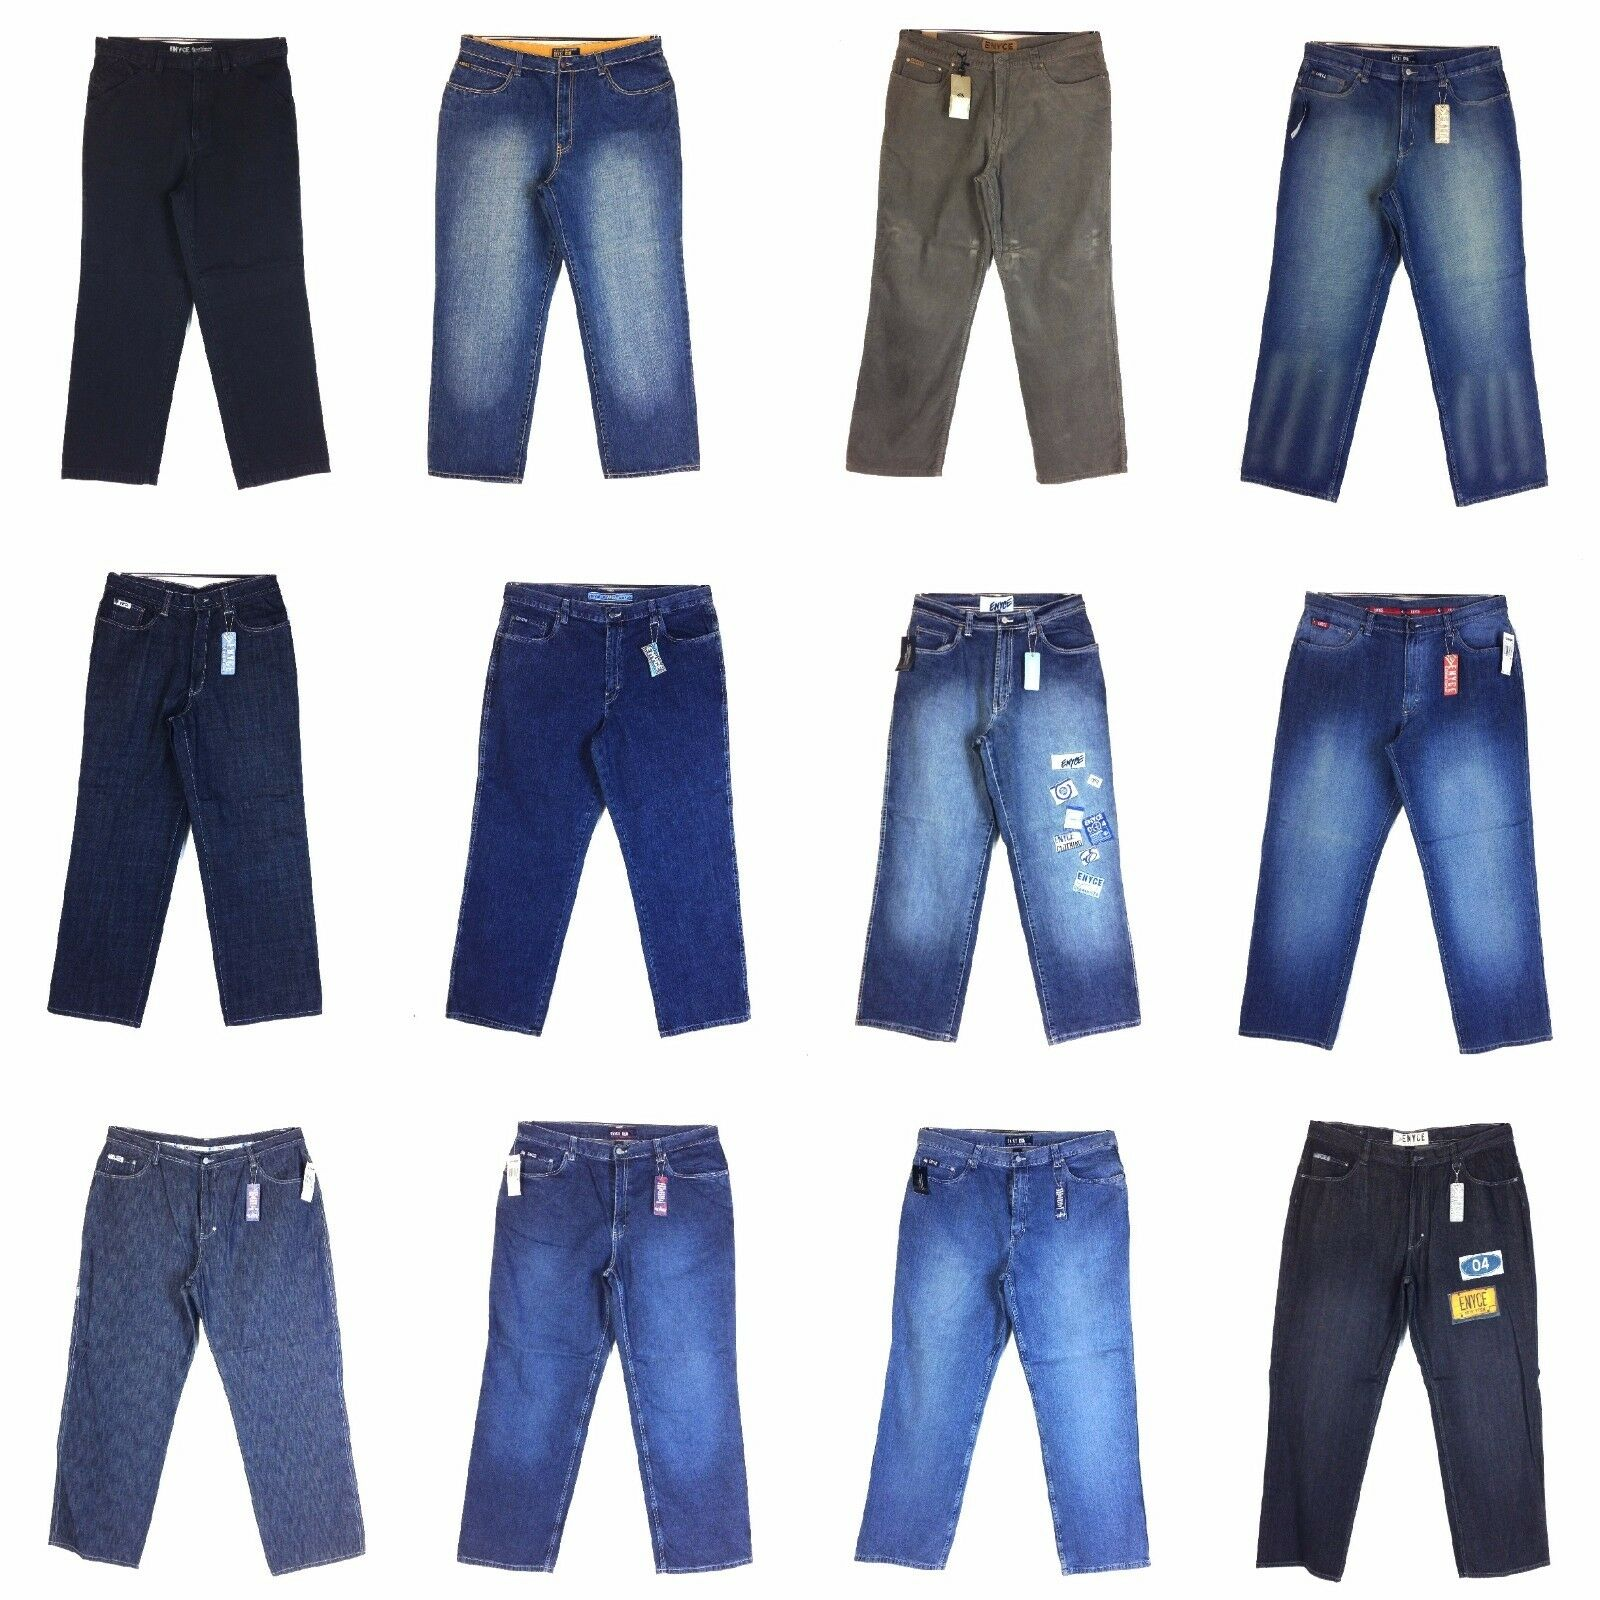 ENYCE MEN'S DESIGNER NEW JEAN, BAGGY,  ASSORTED STYLES GROUP (1),